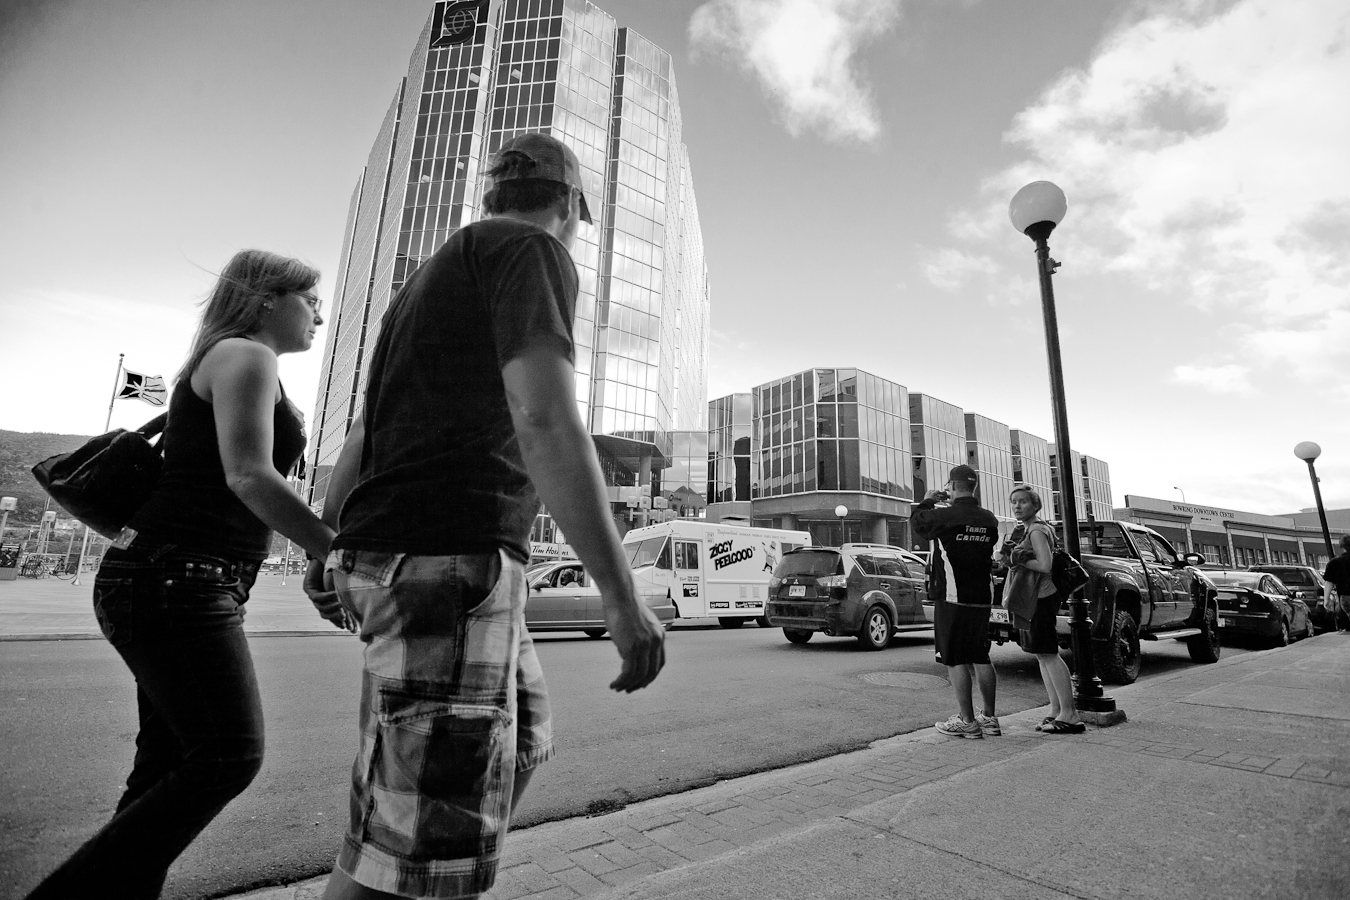 Unasuming Couple shot by D. EDWARDS for A City Like Ours